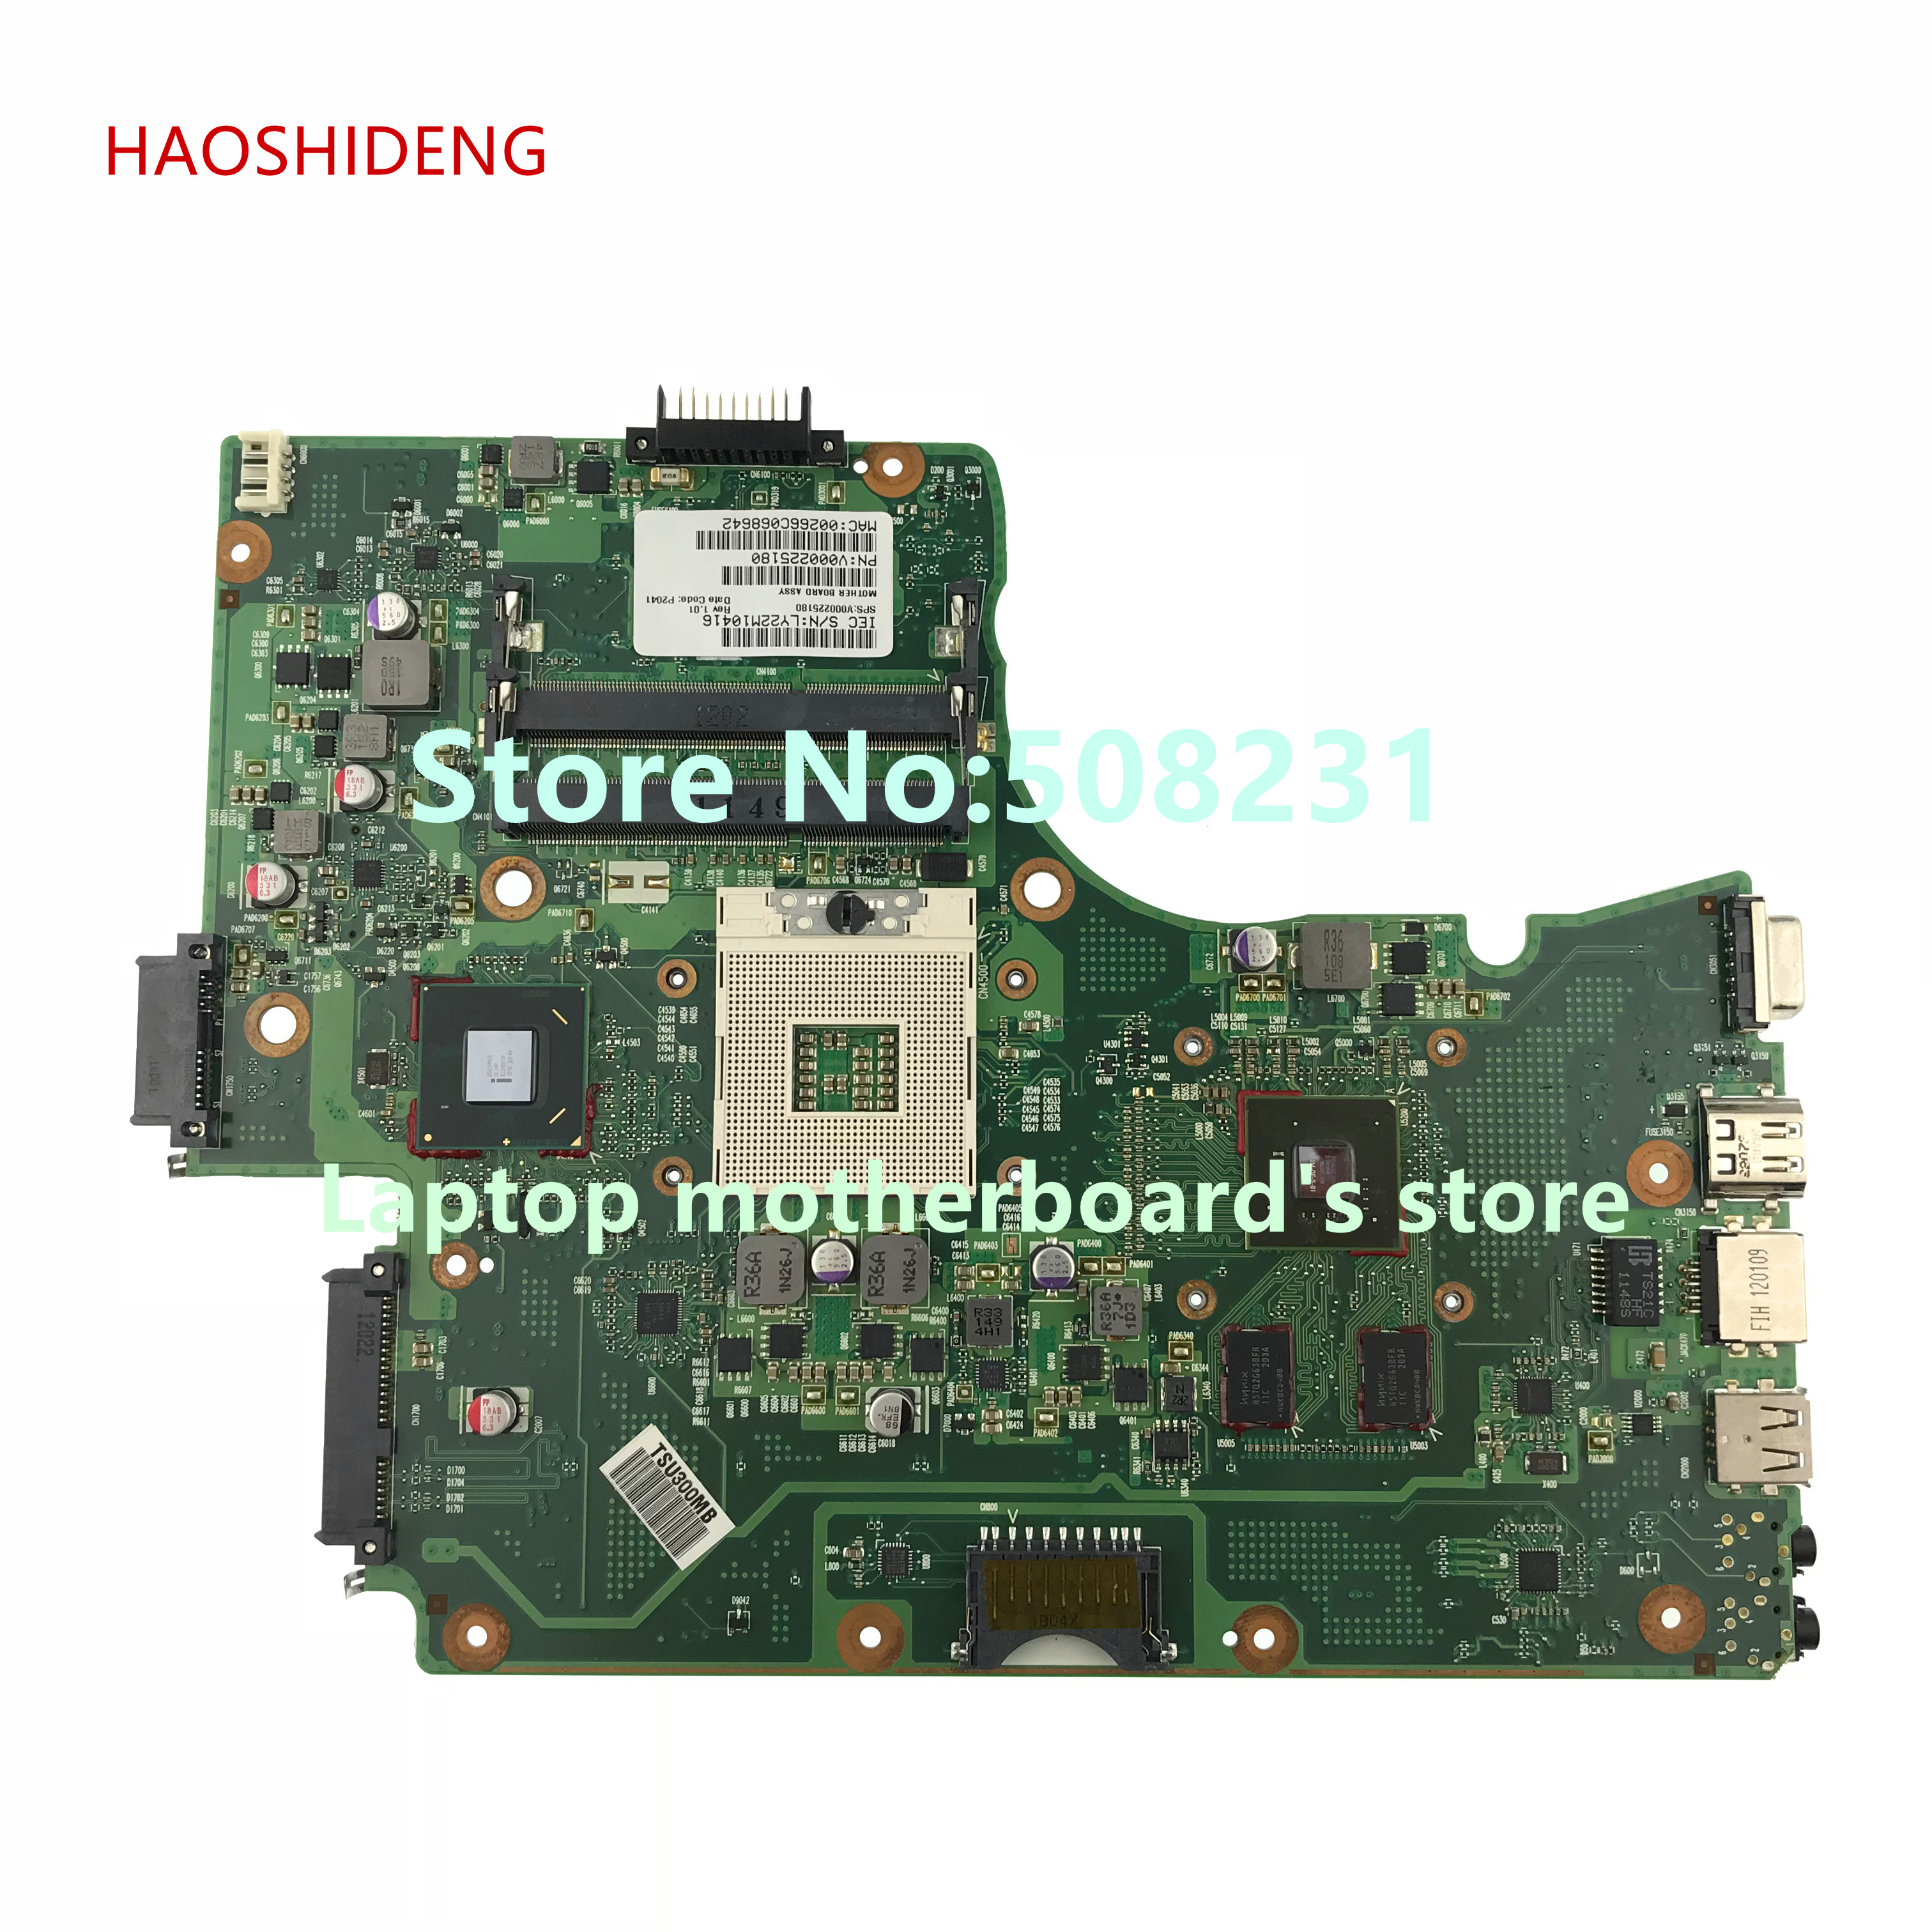 HAOSHIDENG V000225180 mainboard For Toshiba Satellite C650 C655 laptop motherboard with GeForce GT315M for toshiba satellite c655 s5128